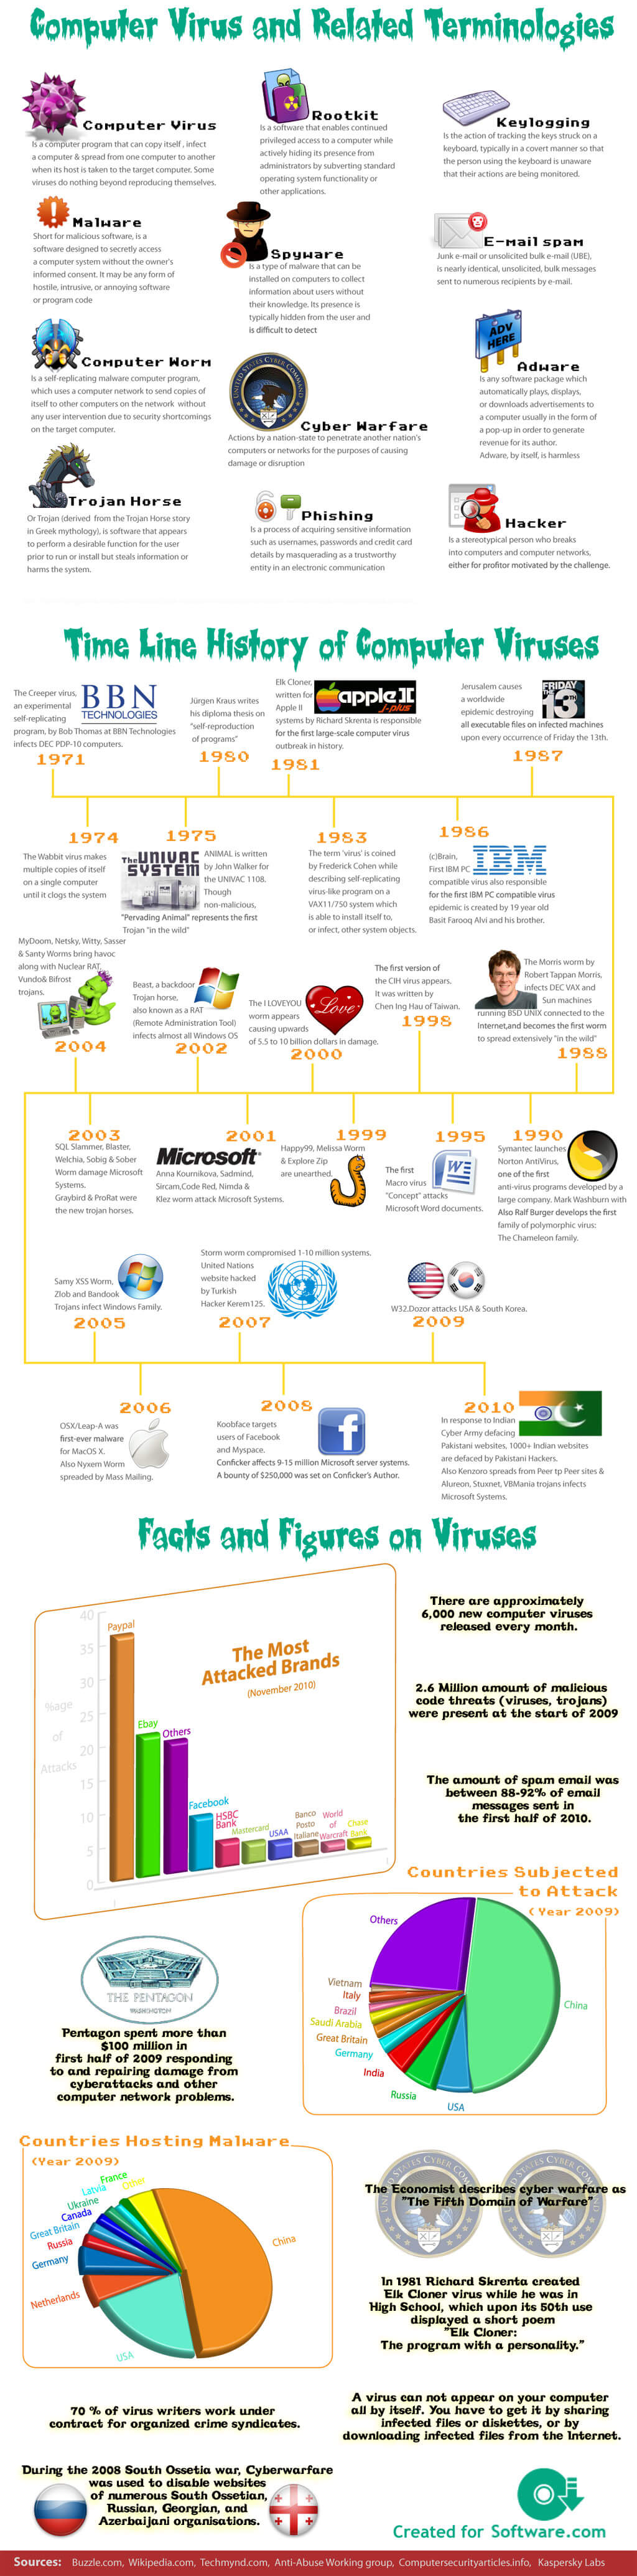 789 antivirus infographic full